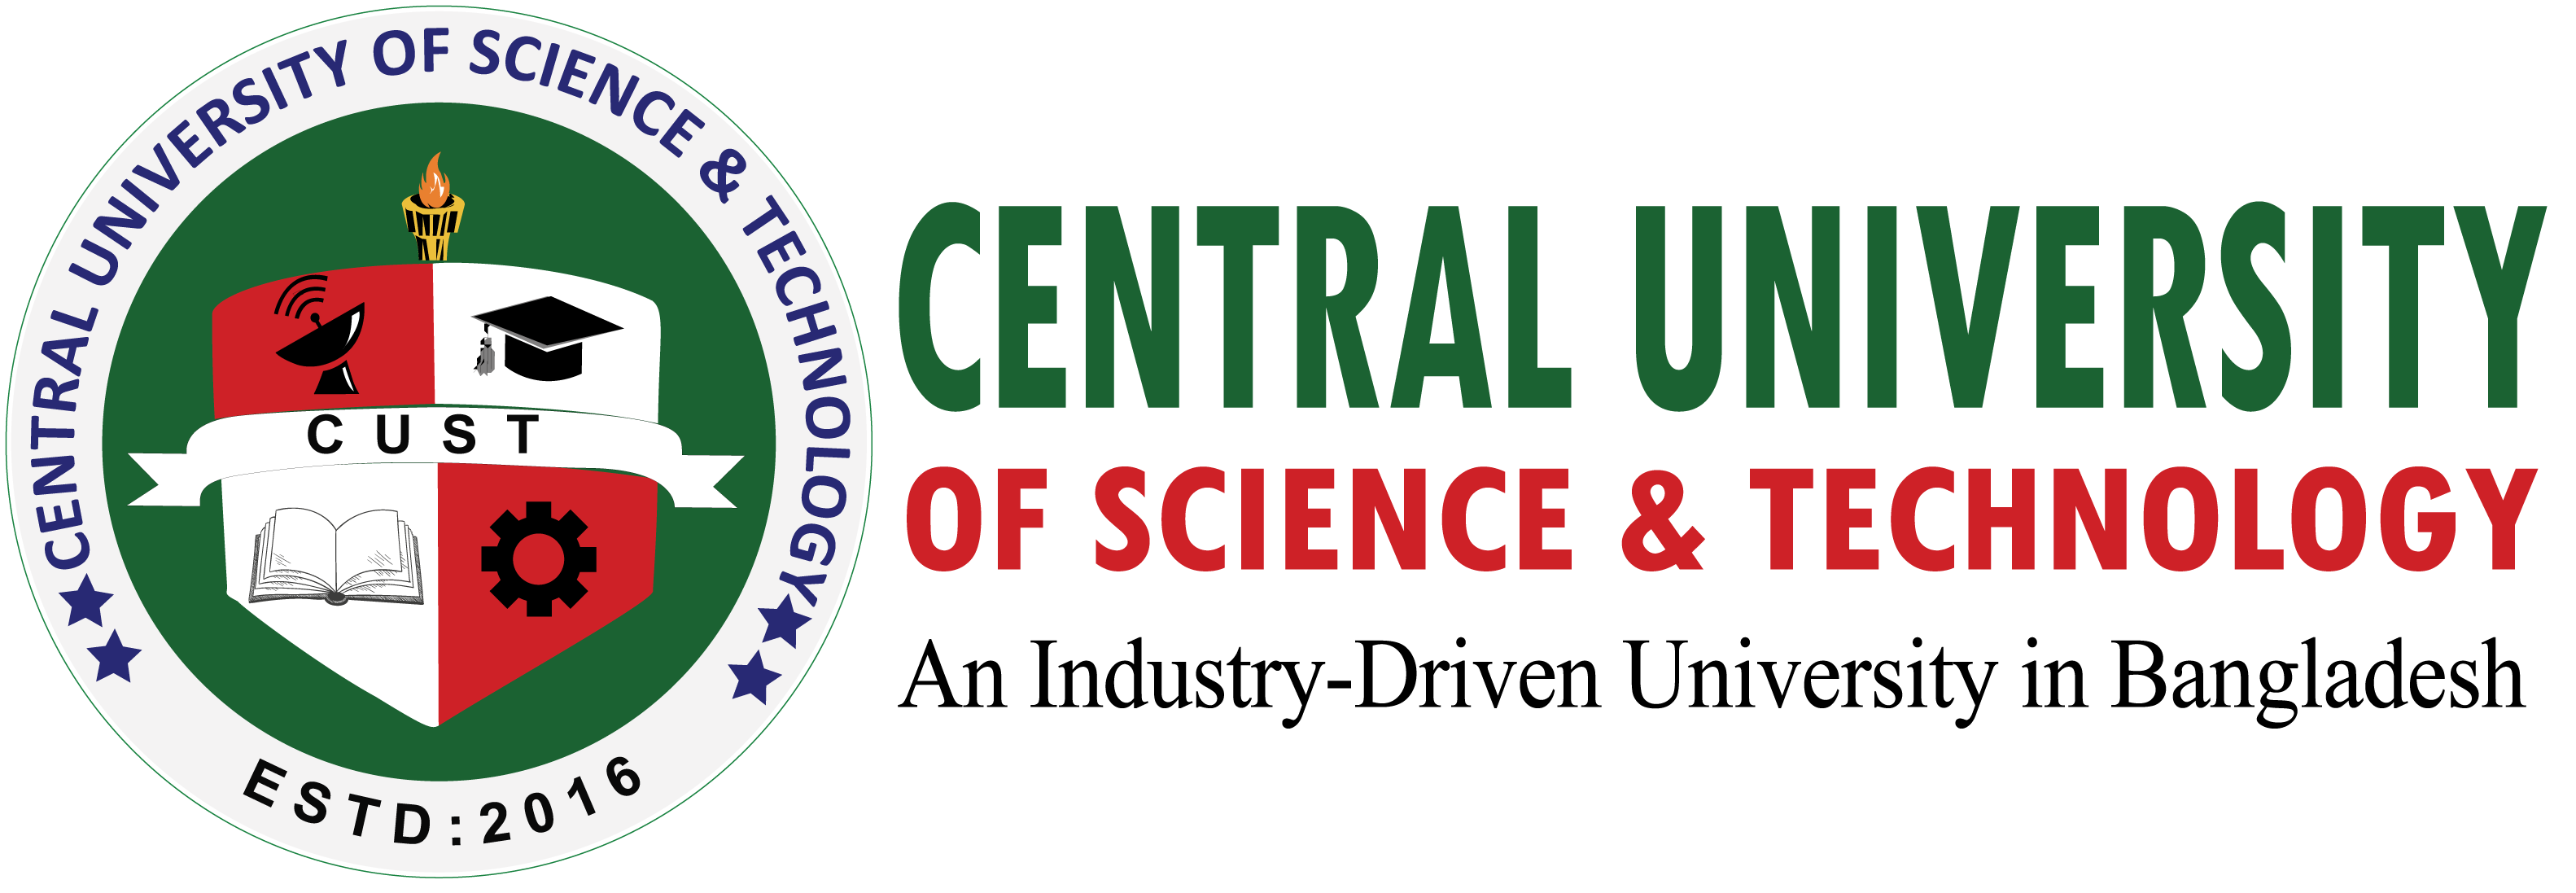 Approval, Govt. & UGC - Central University of Science and Technology